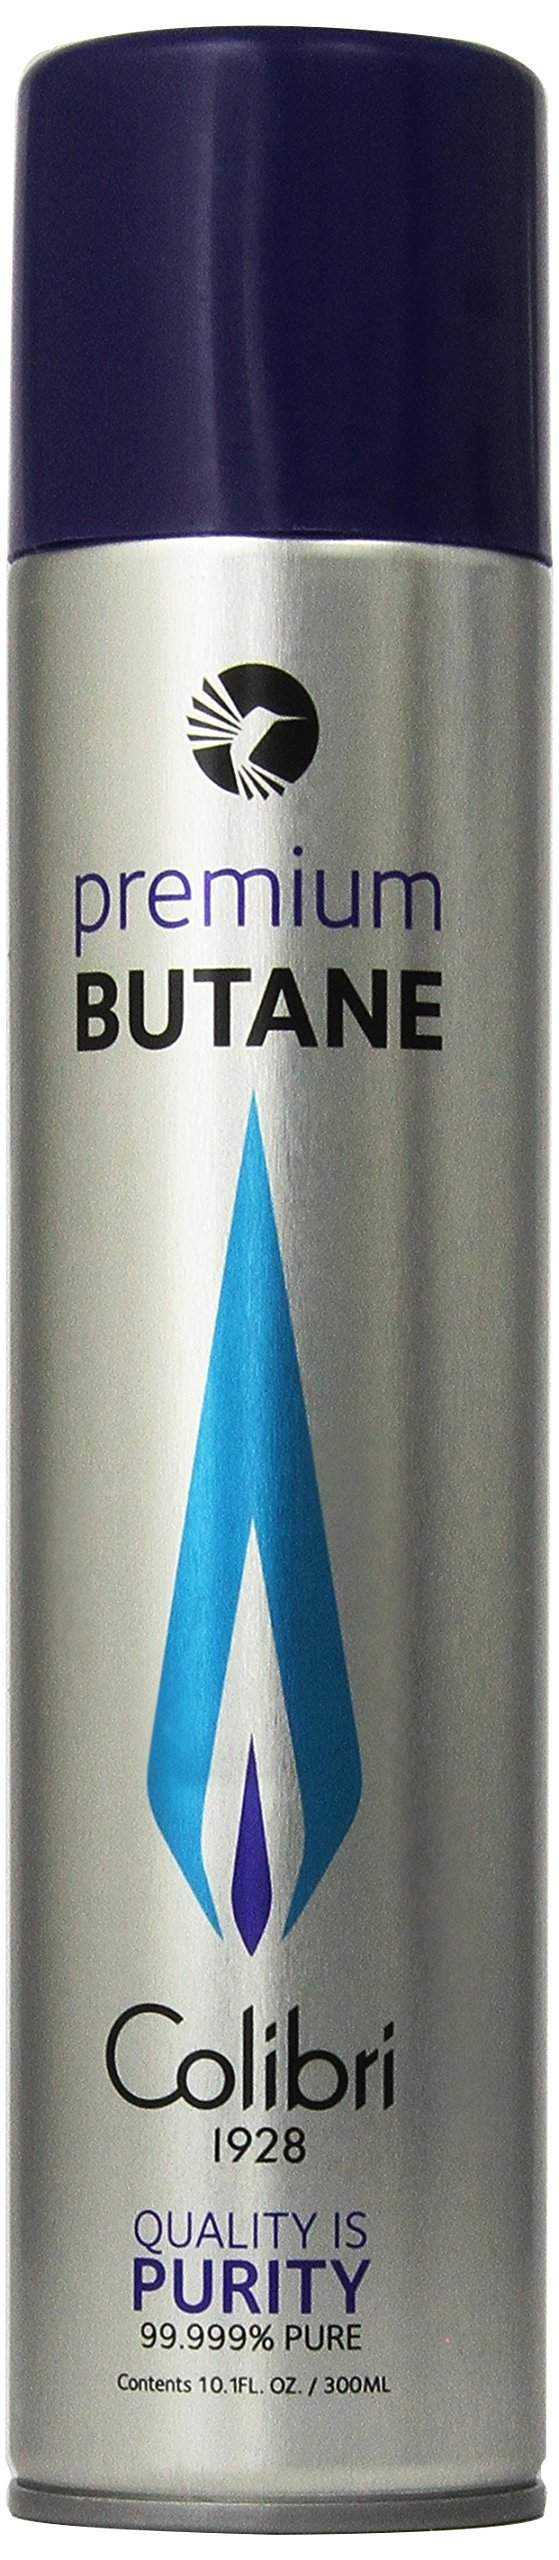 Colibri Premium Butane Large Can - 300 ML 2-Pack